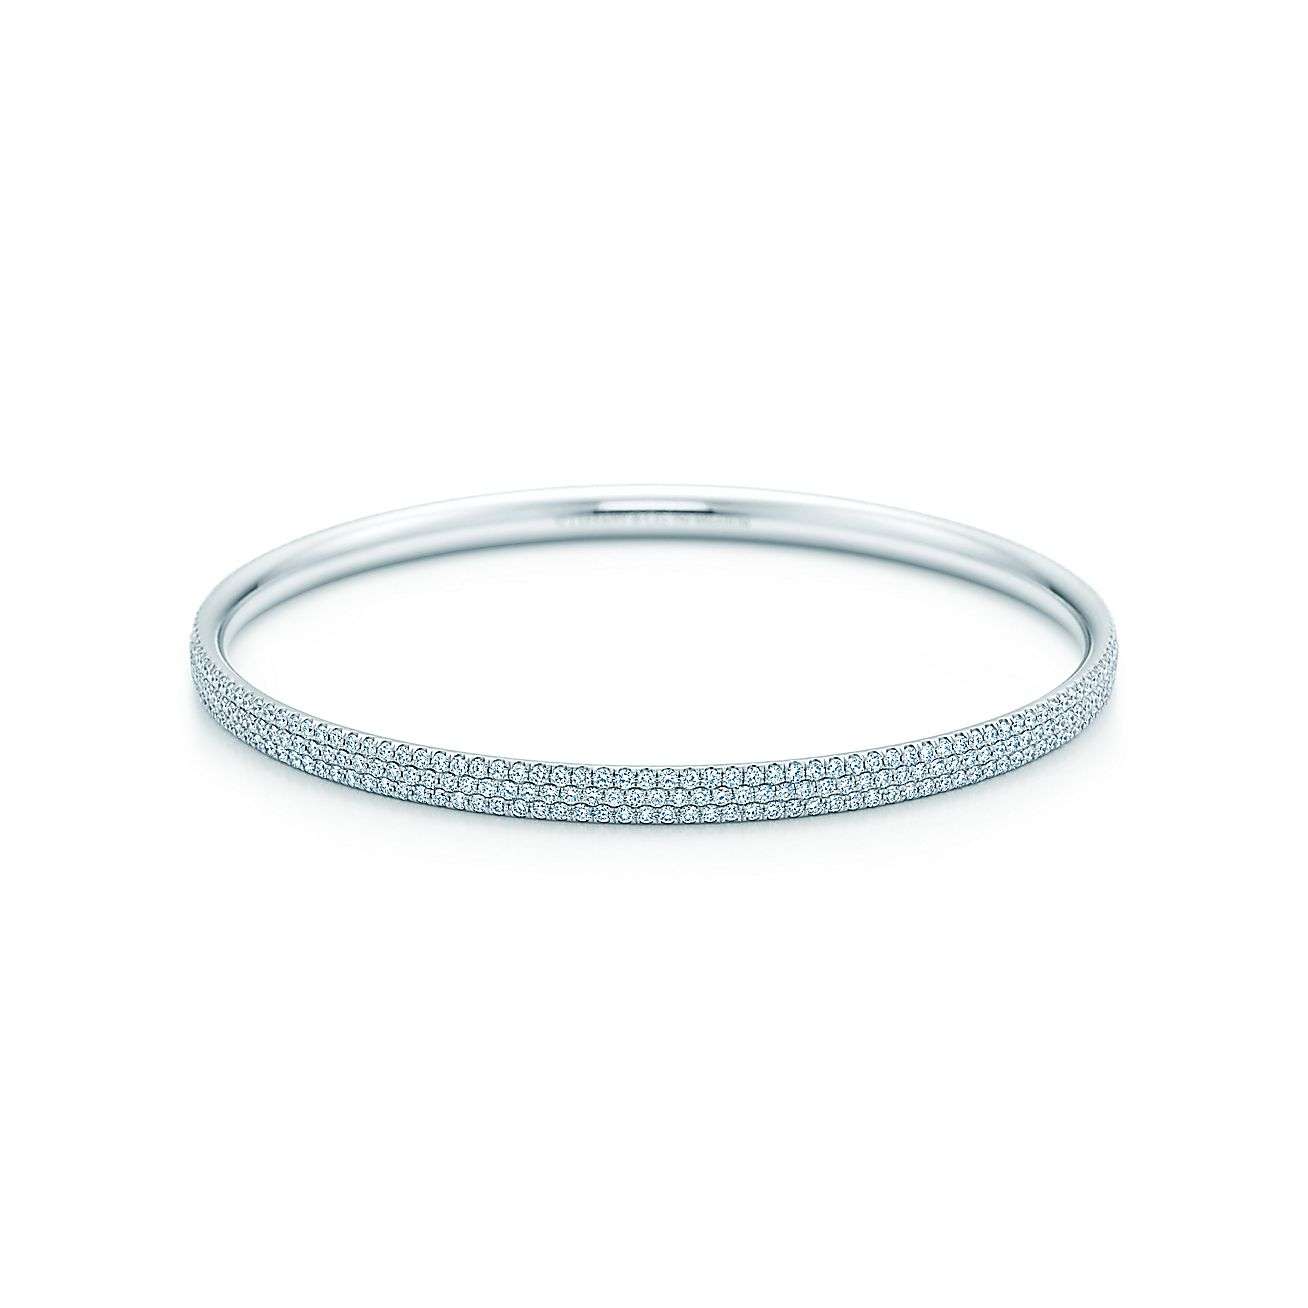 Tiffany Metro:Three-row Bangle